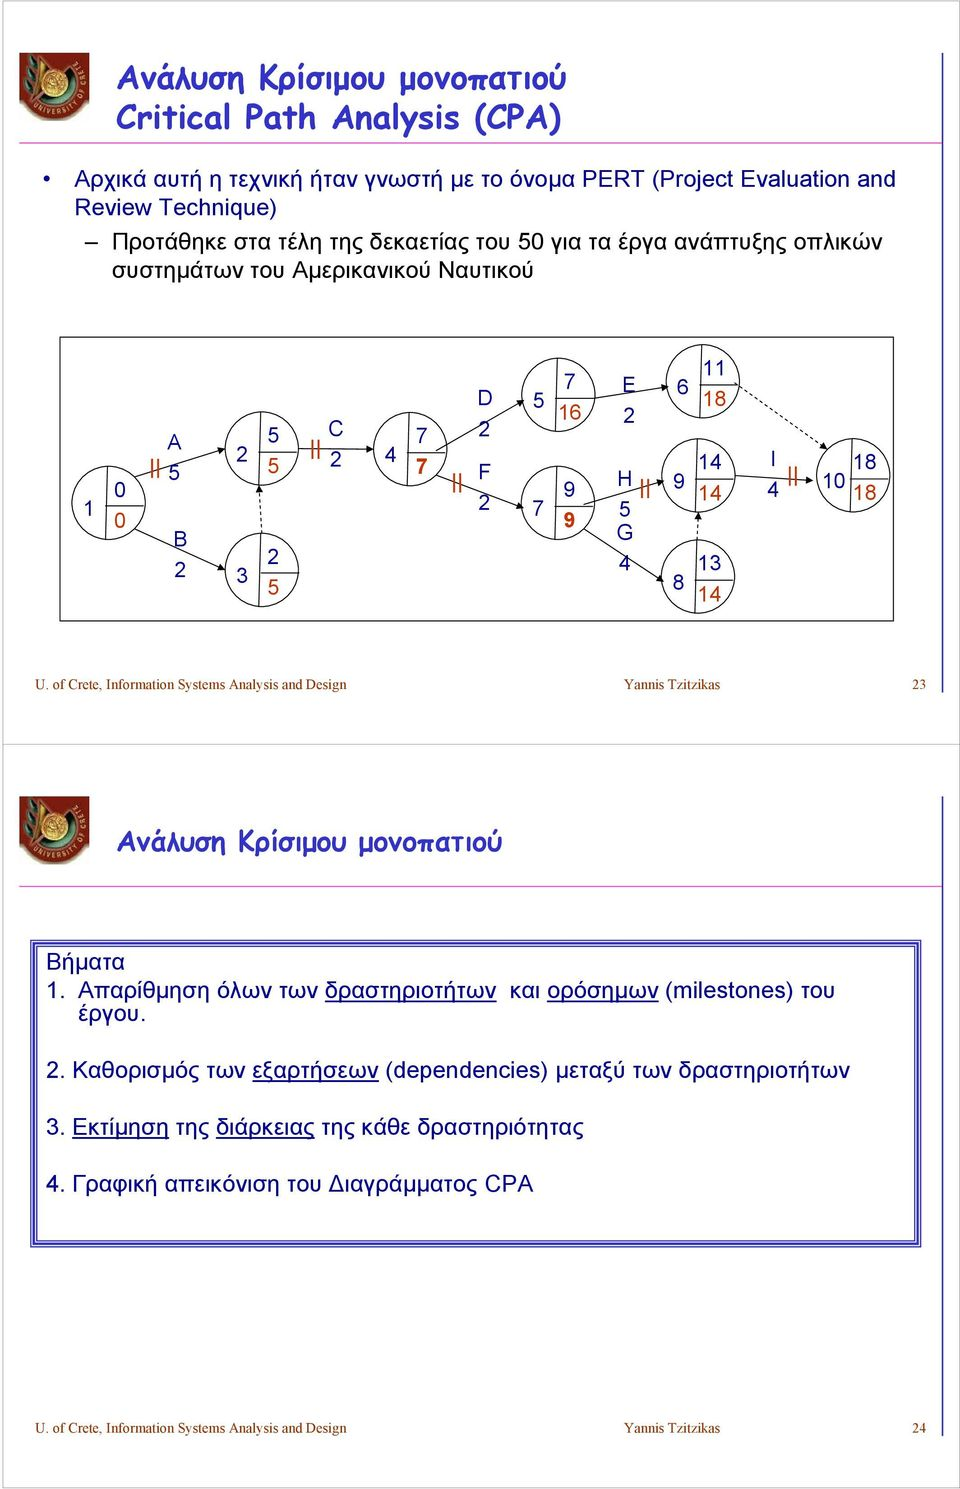 of rete, Information Systems Analysis and esign Yannis Tzitzikas Ανάλυση Κρίσιμου μονοπατιού Βήματα 1. Απαρίθμηση όλων των δραστηριοτήτων και ορόσημων (milestones) του έργου.